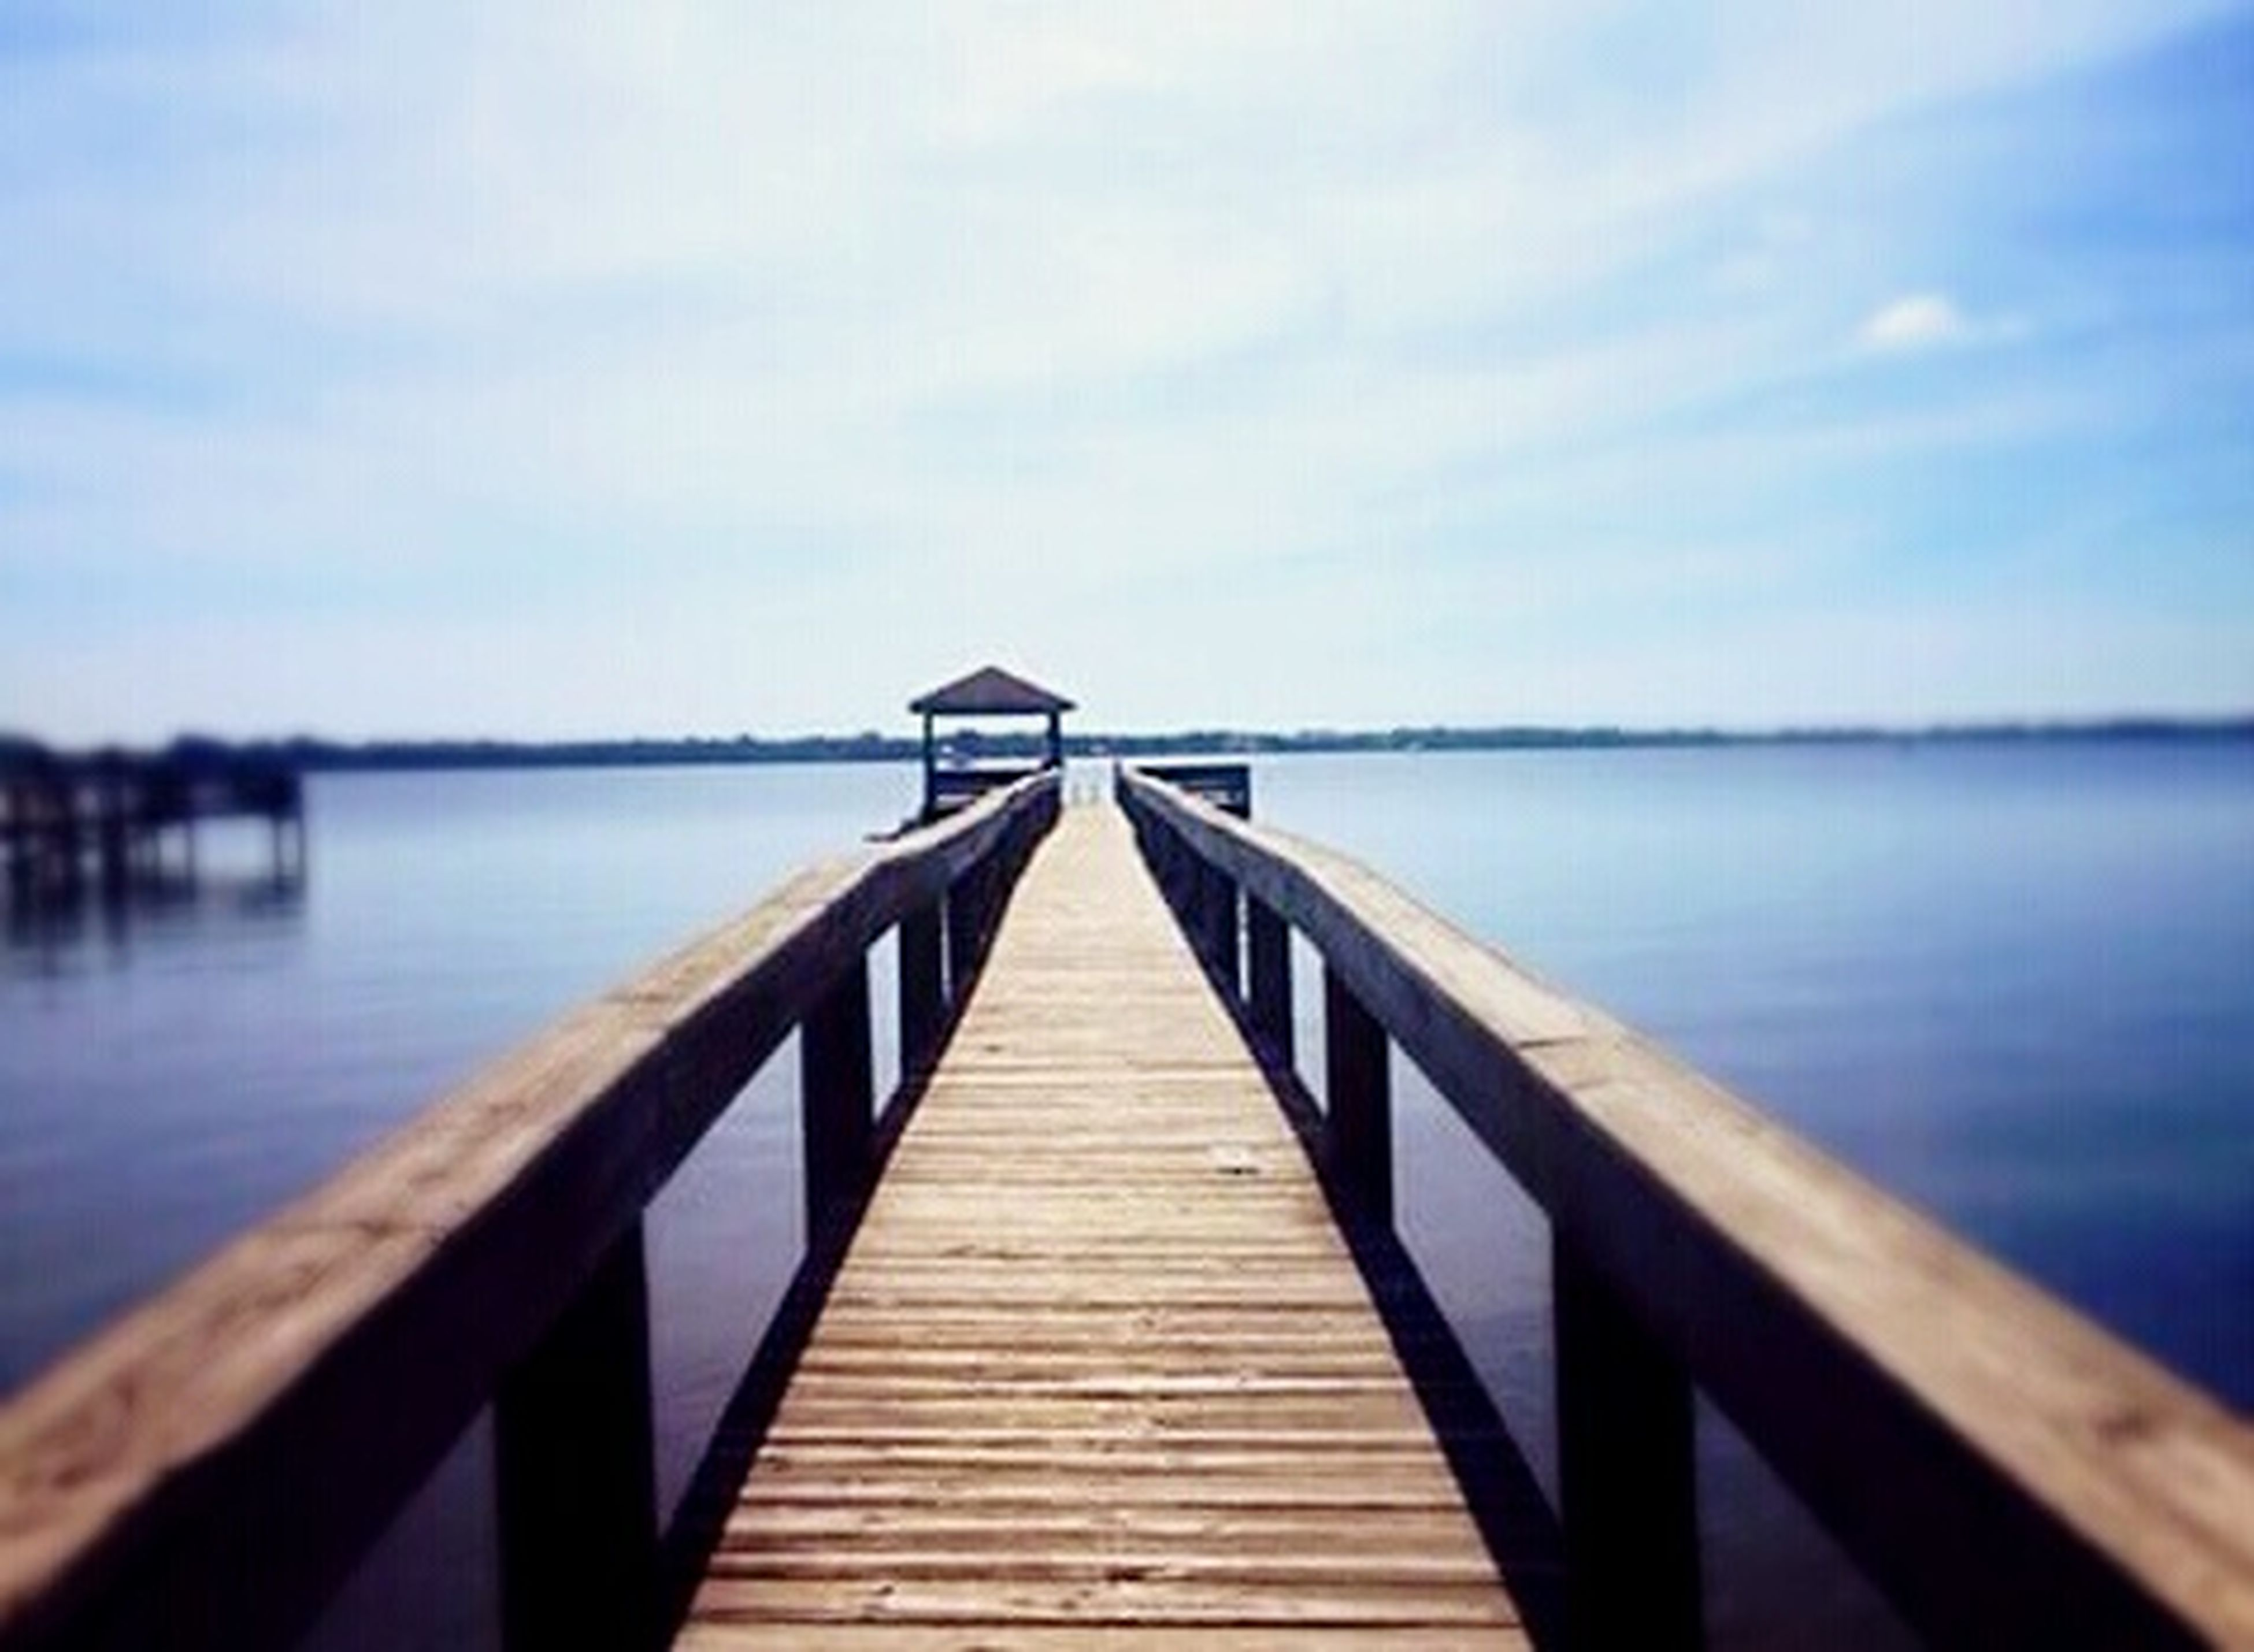 water, pier, wood - material, jetty, sky, sea, built structure, the way forward, wood, tranquil scene, tranquility, railing, diminishing perspective, blue, wooden, nature, lake, day, scenics, architecture